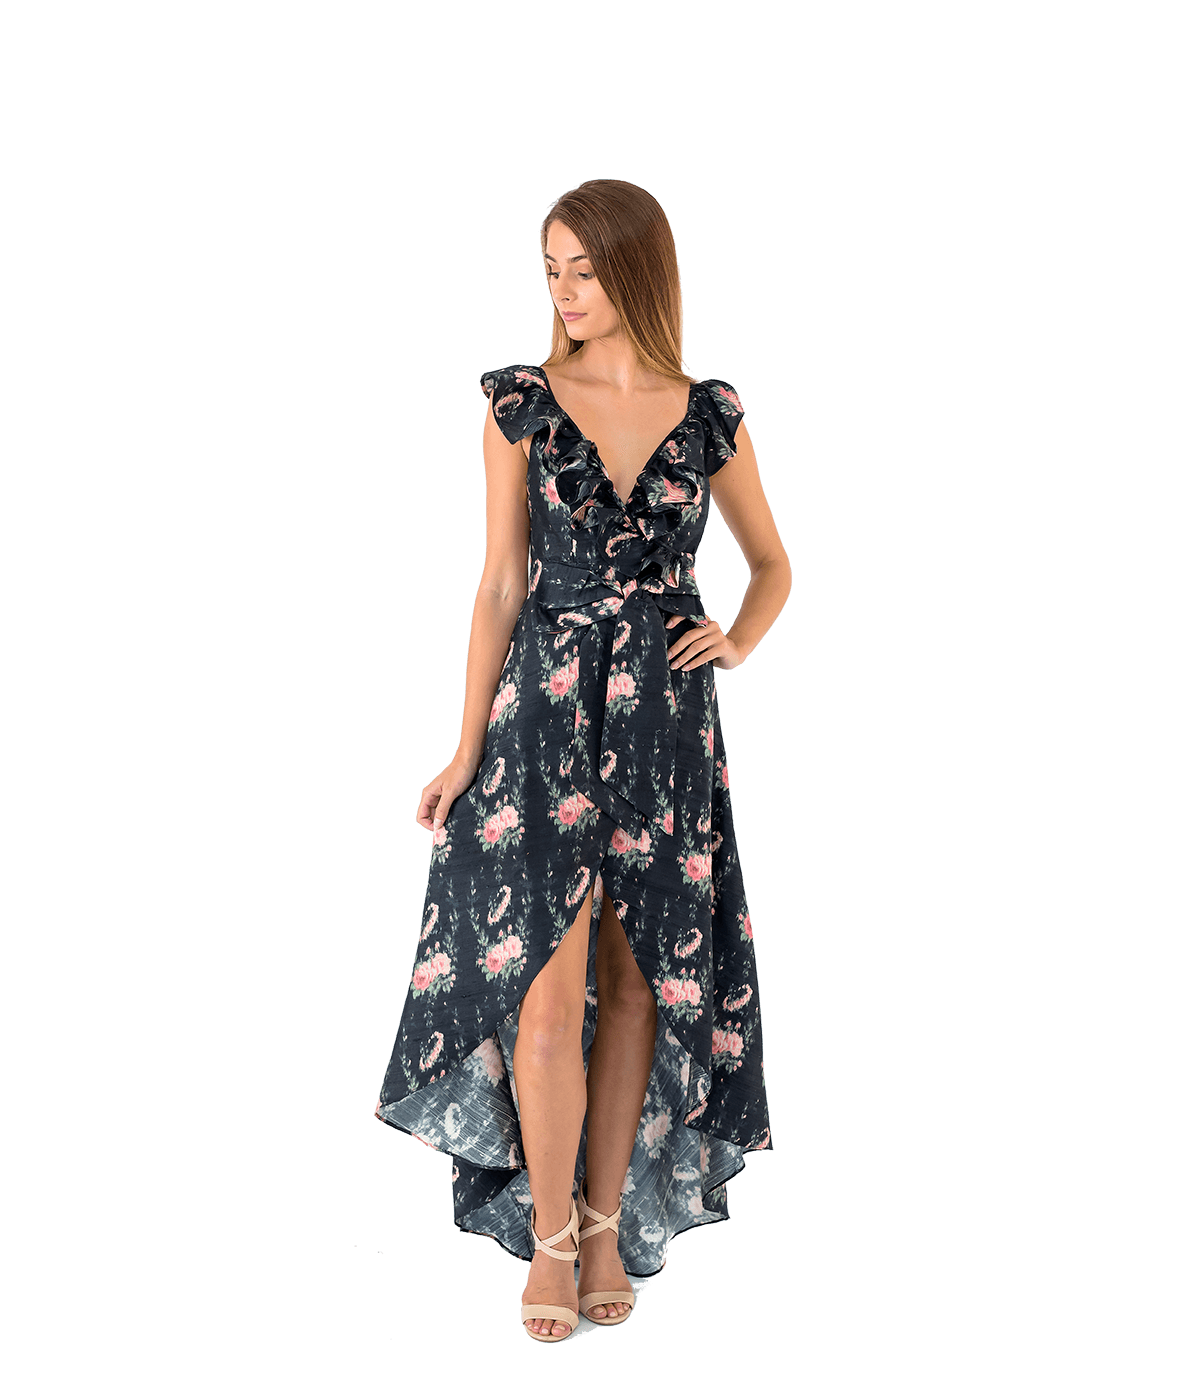 Cosmo Ruffled Floral Maxi Dress - Lady Jetset